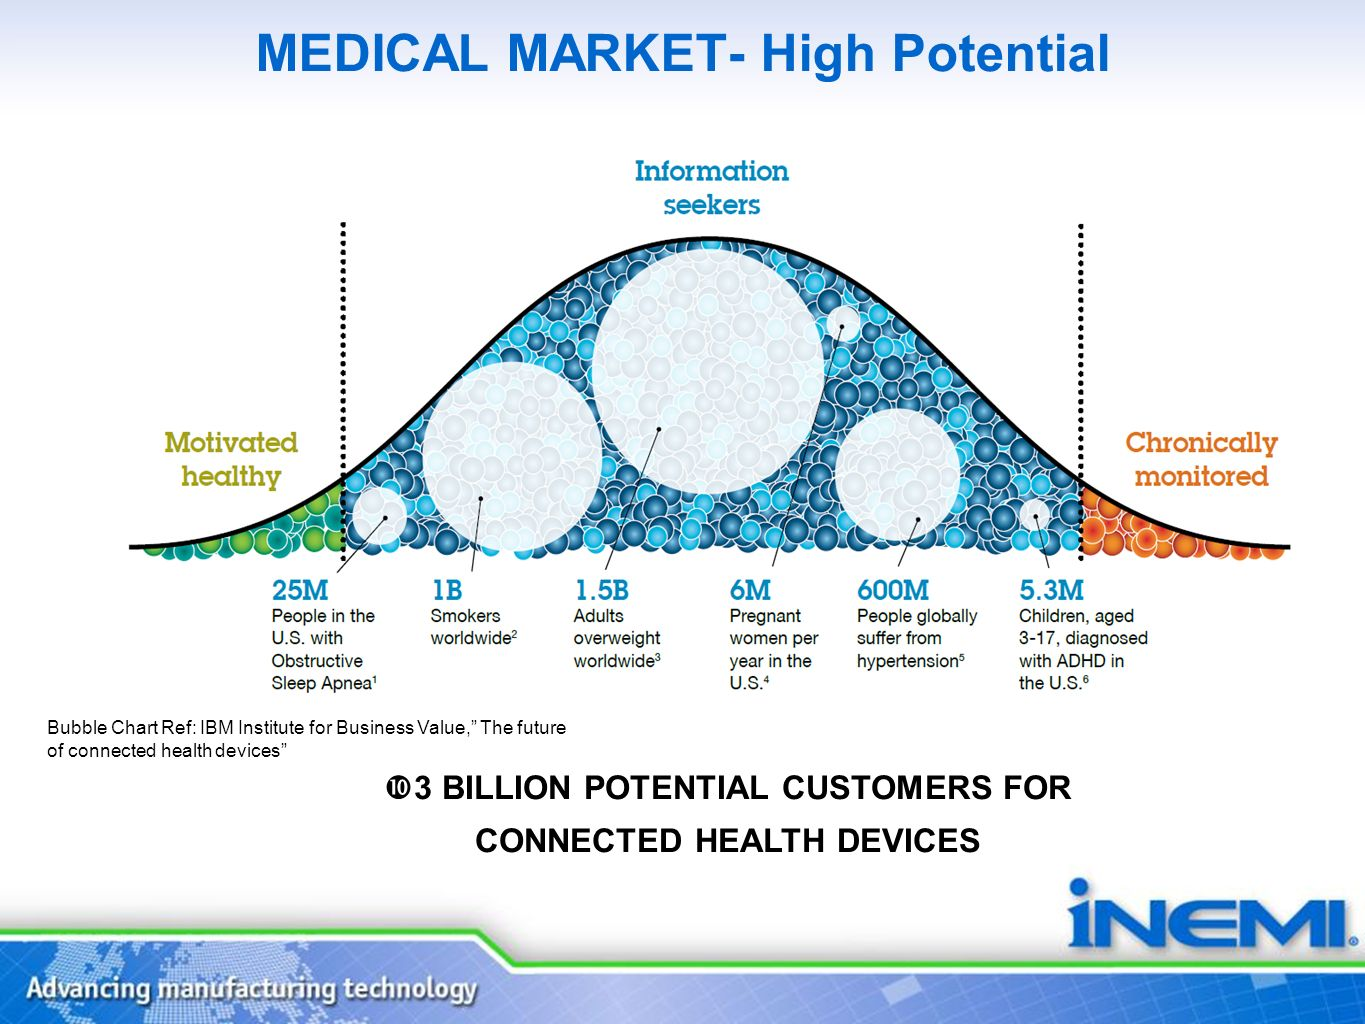 MEDICAL MARKET- High Potential